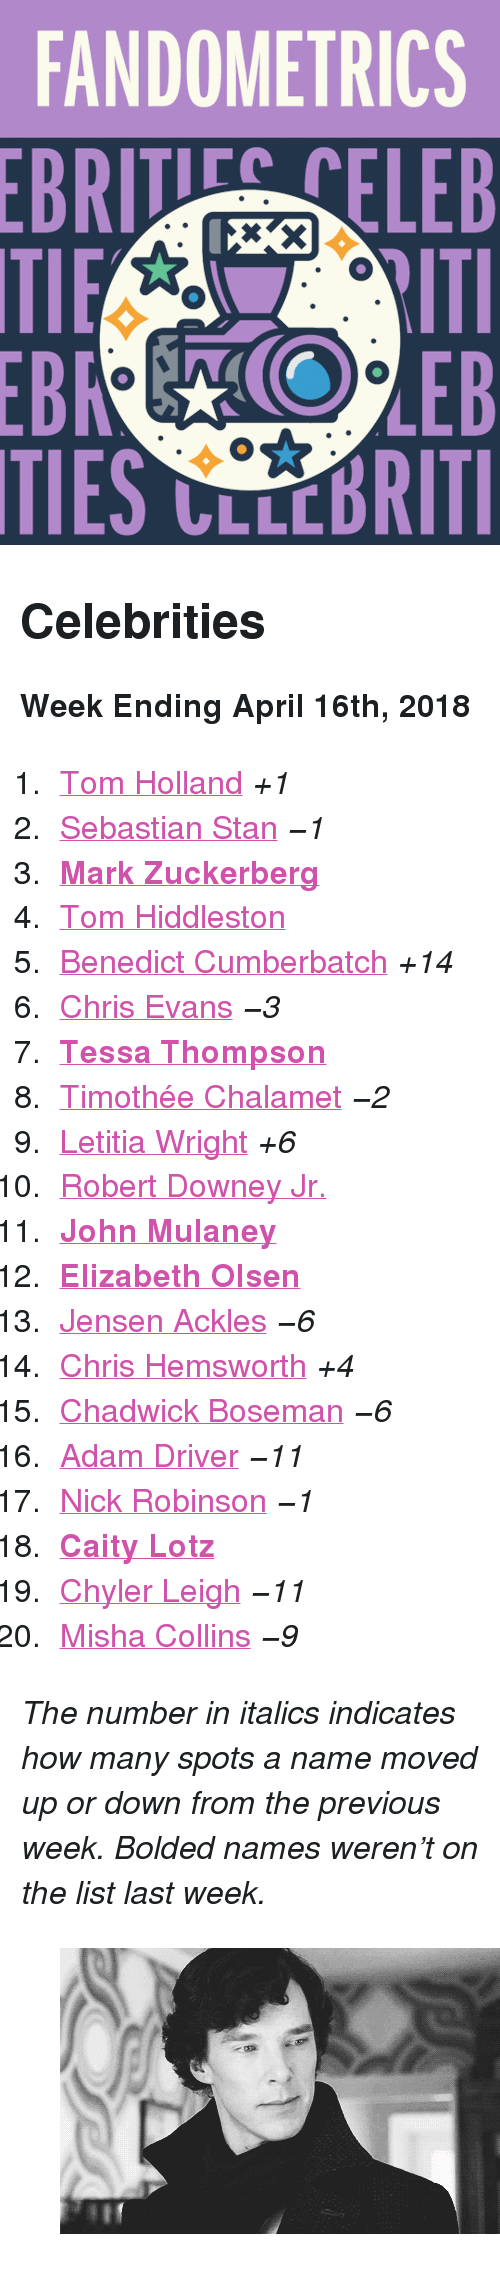 """Adam Driver, Chris Evans, and Chris Hemsworth: FANDOMETRICS  BRI NELEB  TIES CLLEBRITI <h2>Celebrities</h2><p><b>Week Ending April 16th, 2018</b></p><ol><li><a href=""""http://www.tumblr.com/search/tom%20holland"""">Tom Holland</a><i>+1</i></li>  <li><a href=""""http://www.tumblr.com/search/sebastian%20stan"""">Sebastian Stan</a><i><i>−1</i></i></li>  <li><a href=""""http://www.tumblr.com/search/mark%20zuckerberg""""><b>Mark Zuckerberg</b></a></li>  <li><a href=""""http://www.tumblr.com/search/tom%20hiddleston"""">Tom Hiddleston</a></li>  <li><a href=""""http://www.tumblr.com/search/benedict%20cumberbatch"""">Benedict Cumberbatch</a><i>+14</i></li>  <li><a href=""""http://www.tumblr.com/search/chris%20evans"""">Chris Evans</a><i><i>−3</i></i></li>  <li><a href=""""http://www.tumblr.com/search/tessa%20thompson""""><b>Tessa Thompson</b></a></li>  <li><a href=""""http://www.tumblr.com/search/timothee%20chalamet"""">Timothée Chalamet</a><i><i>−2</i></i></li>  <li><a href=""""http://www.tumblr.com/search/letitia%20wright"""">Letitia Wright</a><i>+6</i></li>  <li><a href=""""http://www.tumblr.com/search/robert%20downey%20jr"""">Robert Downey Jr.</a></li>  <li><a href=""""http://www.tumblr.com/search/john%20mulaney""""><b>John Mulaney</b></a></li>  <li><a href=""""http://www.tumblr.com/search/elizabeth%20olsen""""><b>Elizabeth Olsen</b></a></li>  <li><a href=""""http://www.tumblr.com/search/jensen%20ackles"""">Jensen Ackles</a><i><i>−6</i></i></li>  <li><a href=""""http://www.tumblr.com/search/chris%20hemsworth"""">Chris Hemsworth</a><i>+4</i></li>  <li><a href=""""http://www.tumblr.com/search/chadwick%20boseman"""">Chadwick Boseman</a><i><i>−6</i></i></li>  <li><a href=""""http://www.tumblr.com/search/adam%20driver"""">Adam Driver</a><i><i>−11</i></i></li>  <li><a href=""""http://www.tumblr.com/search/nick%20robinson"""">Nick Robinson</a><i><i>−1</i></i></li>  <li><a href=""""http://www.tumblr.com/search/caity%20lotz""""><b>Caity Lotz</b></a></li>  <li><a href=""""http://www.tumblr.com/search/chyler%20leigh"""">Chyler Leigh</a><i><i>−11</i></i></li>  <li><a href=""""http://www.tumblr.co"""